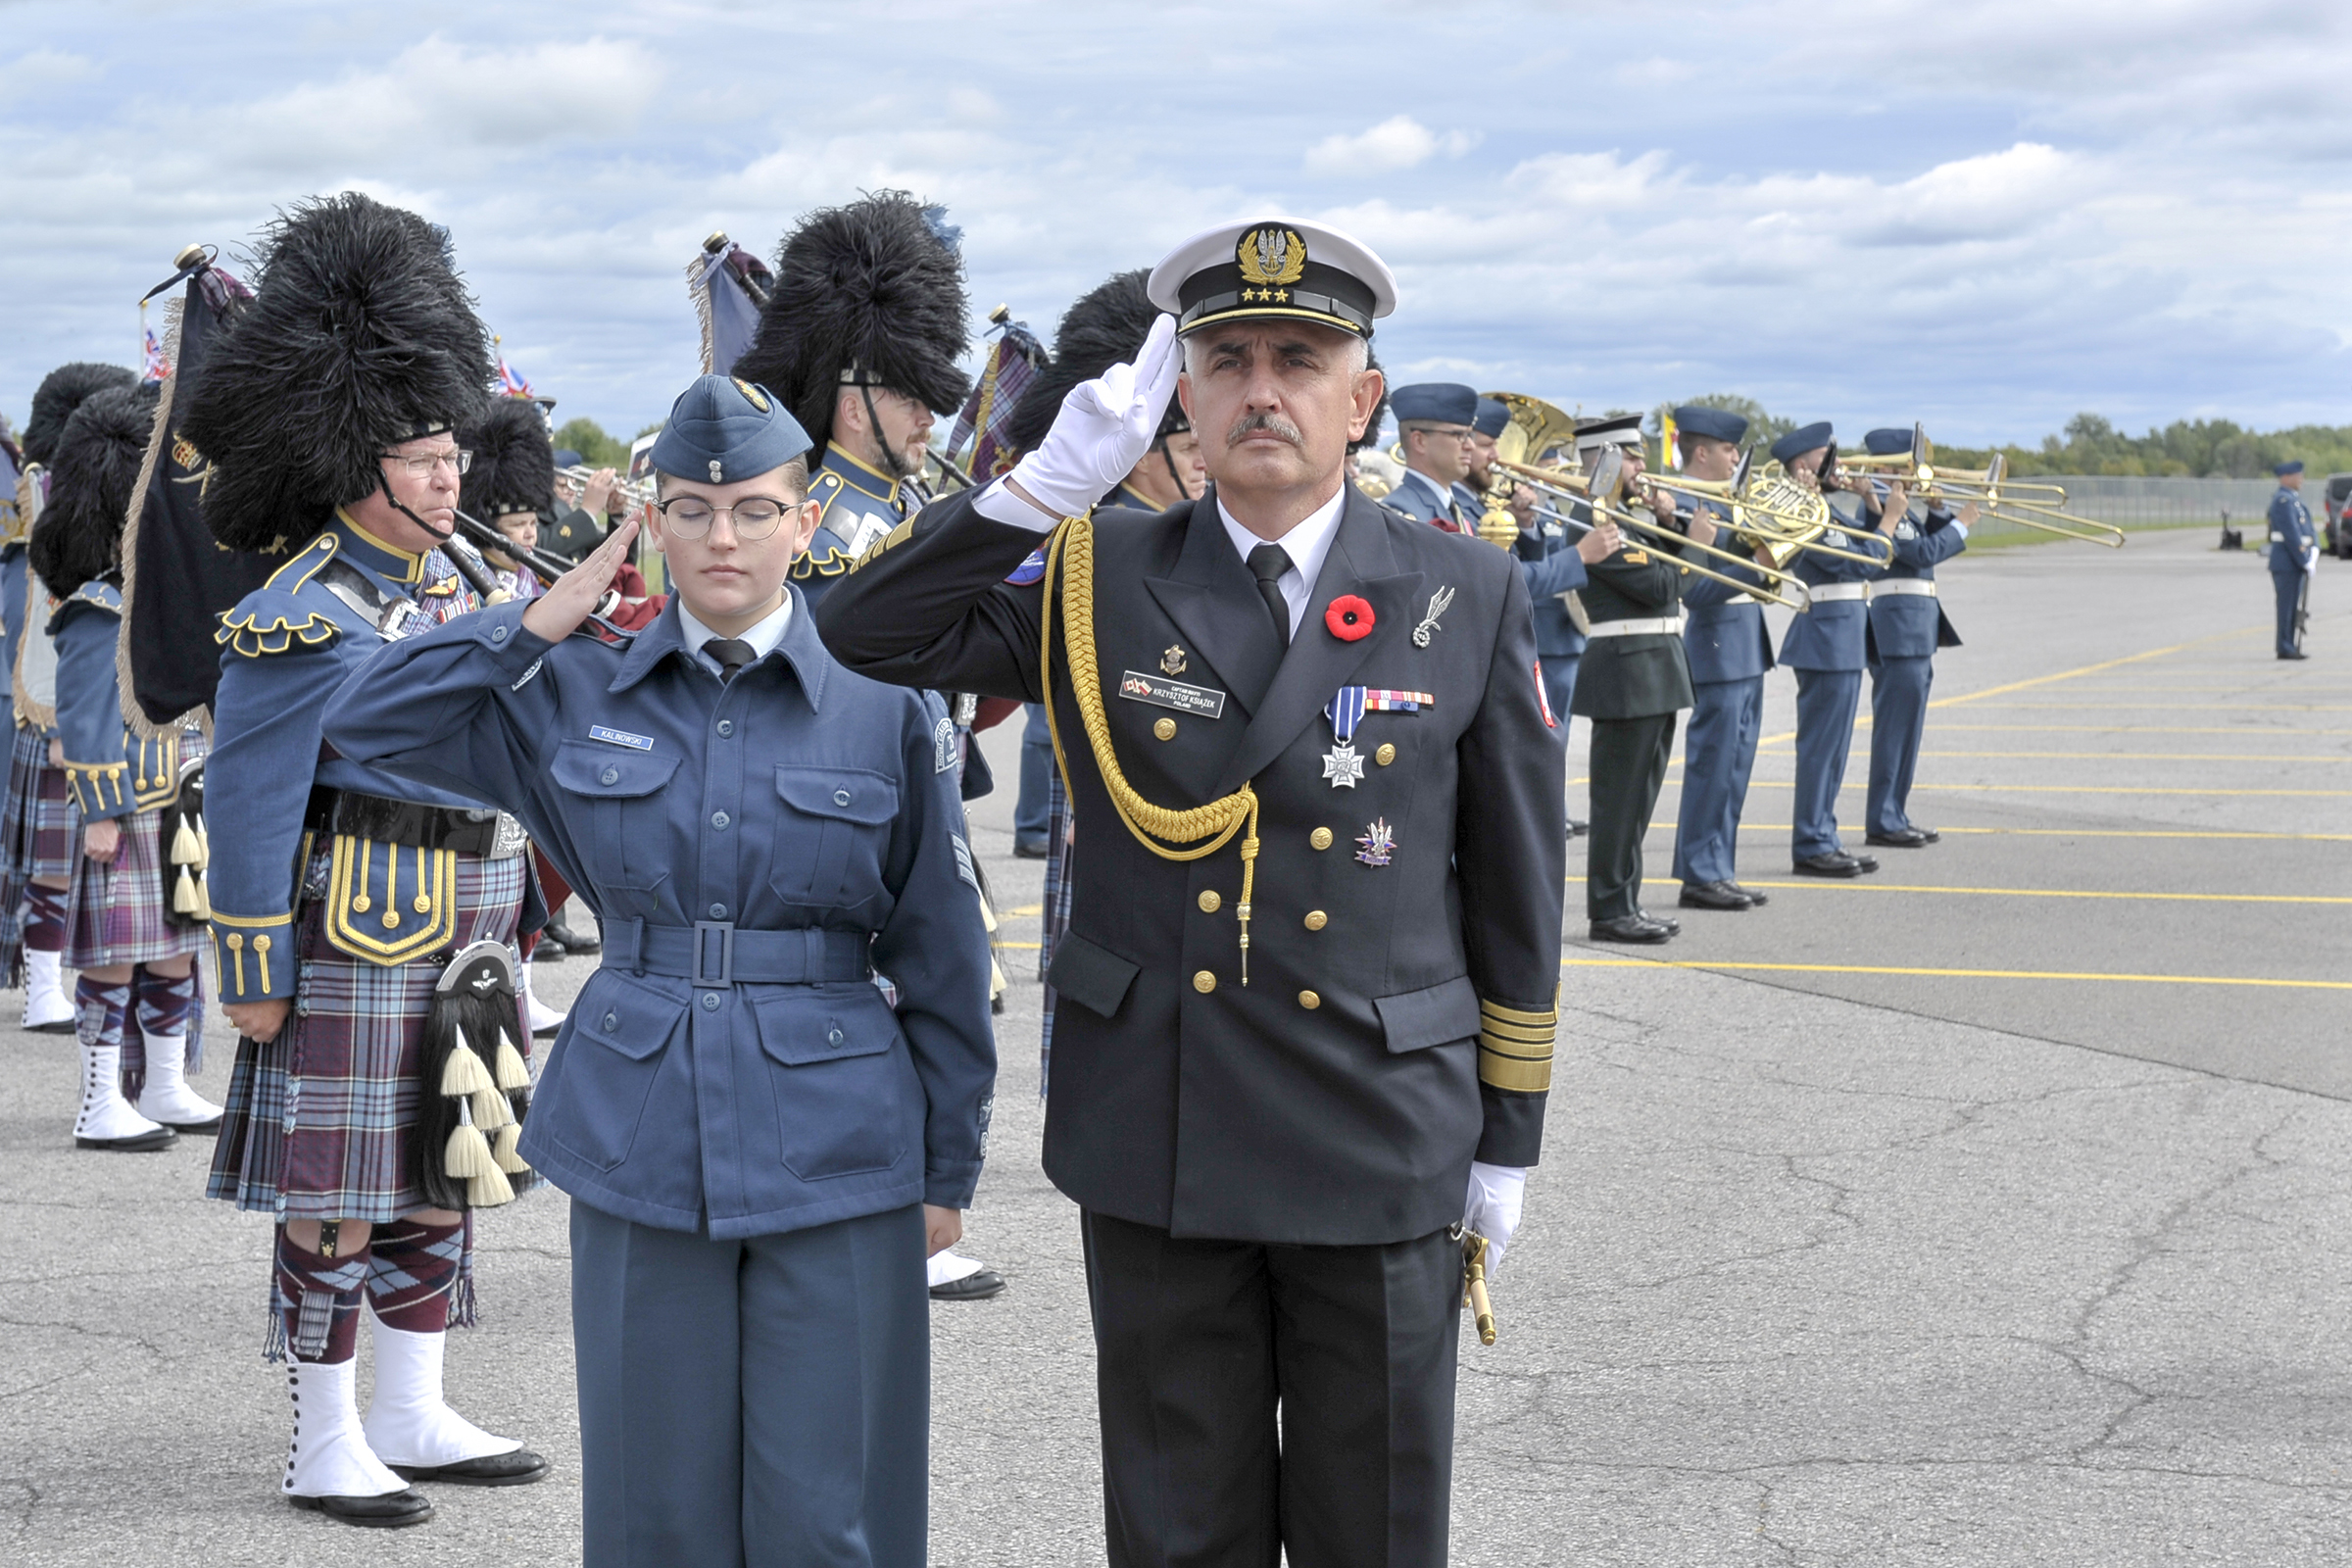 A youth wearing an Air Force-style uniform and a man wearing a naval uniform face the camera and salute. In the background are a brass band and bagpipers.